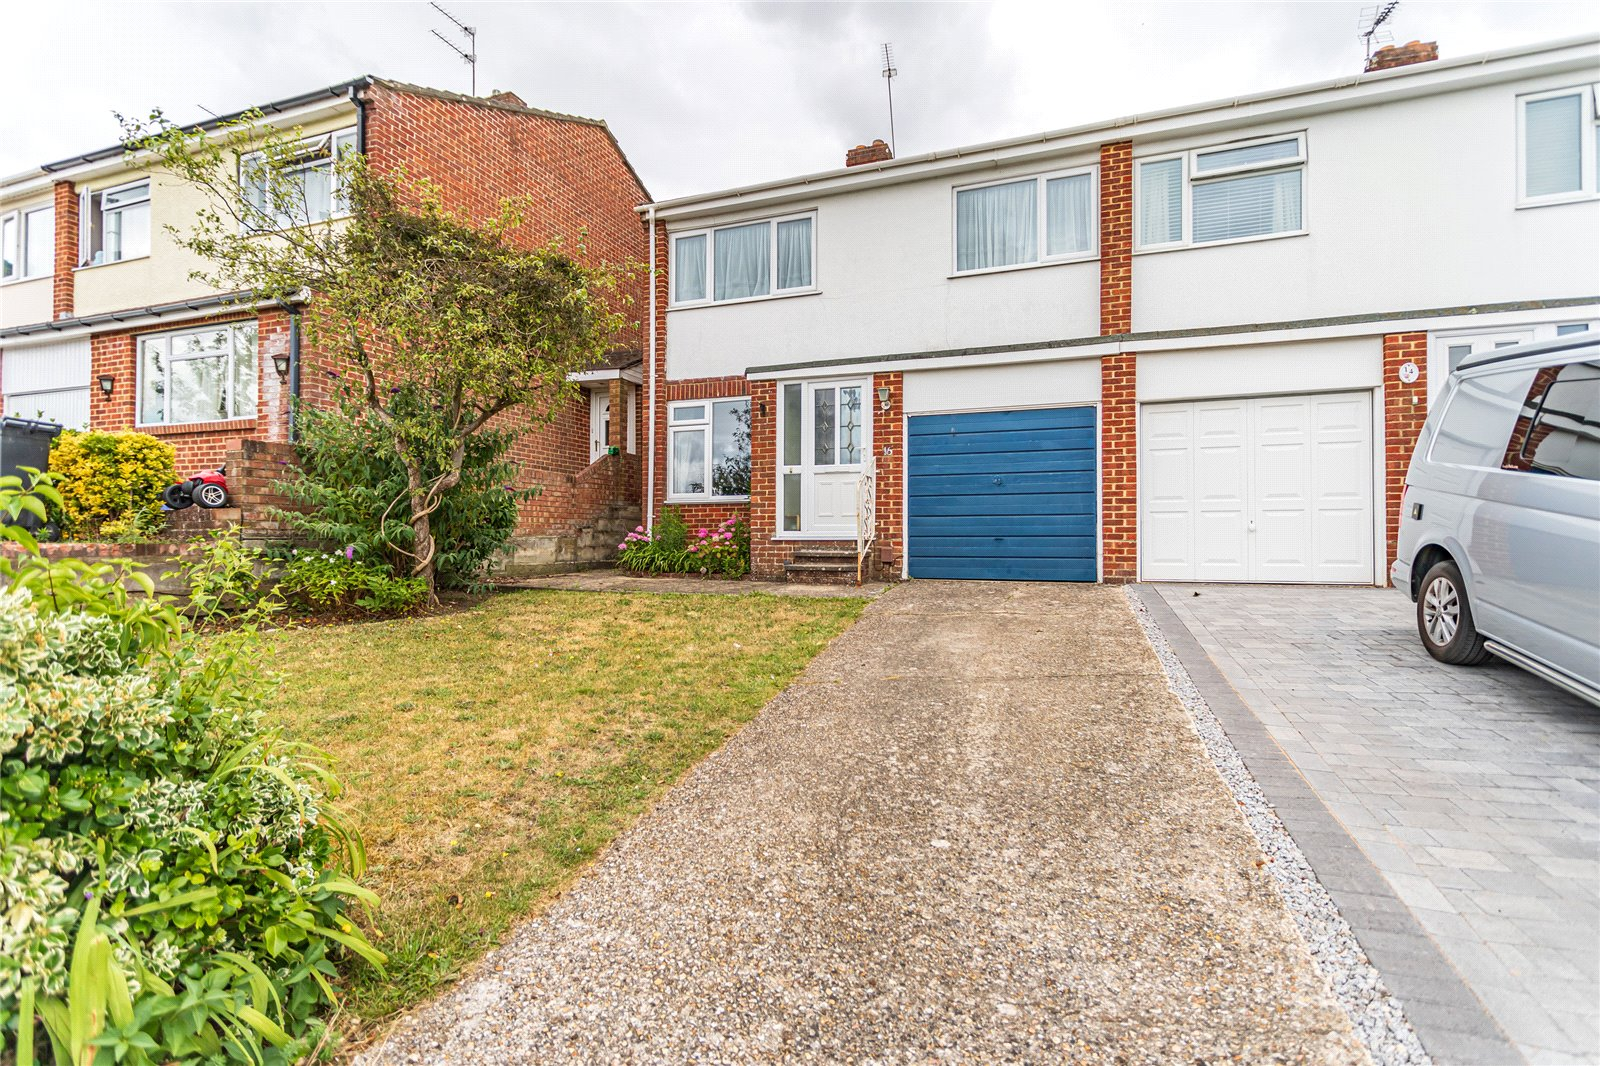 3 bed house for sale in Merrow Avenue, Poole, BH12